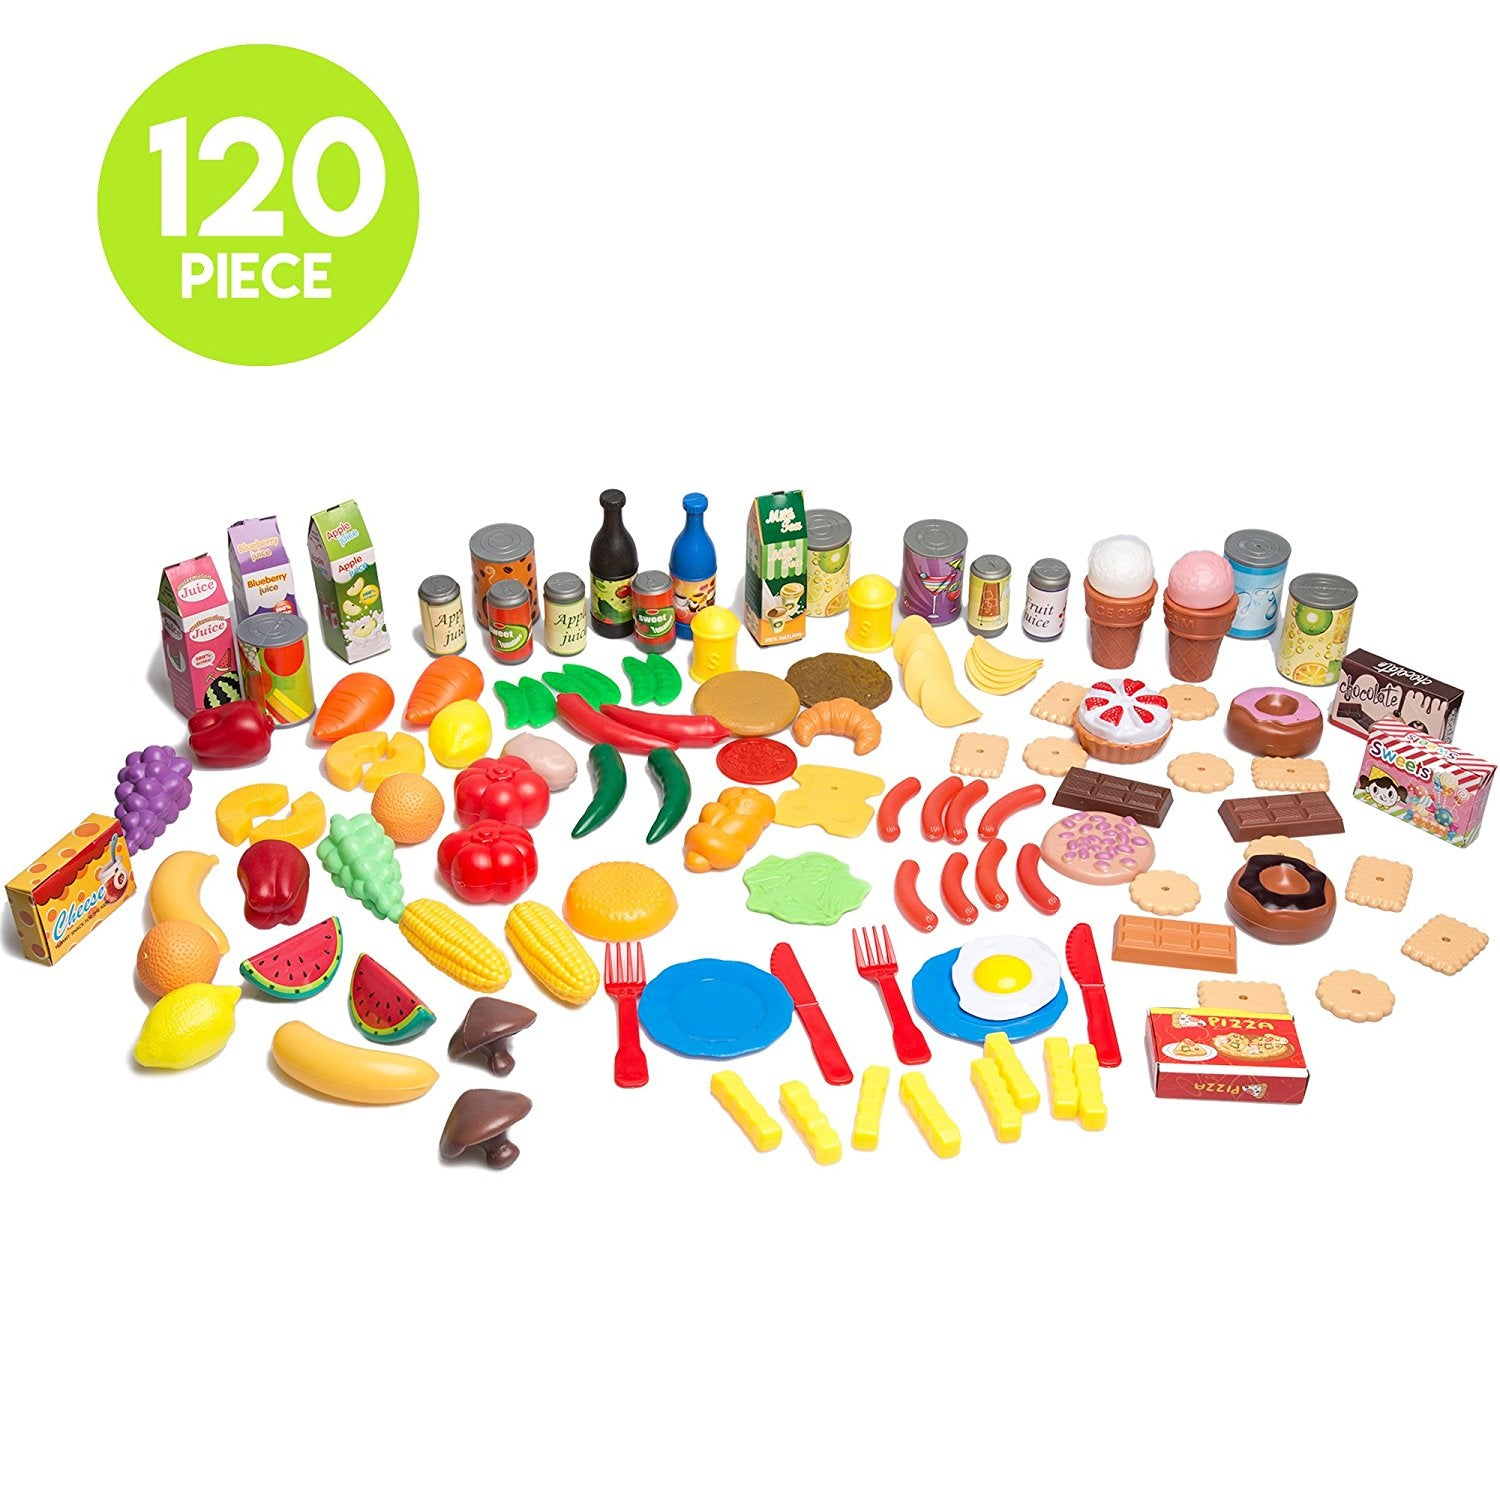 120 Piece Pretend Food Playset - Plastic Play Food Toys Set